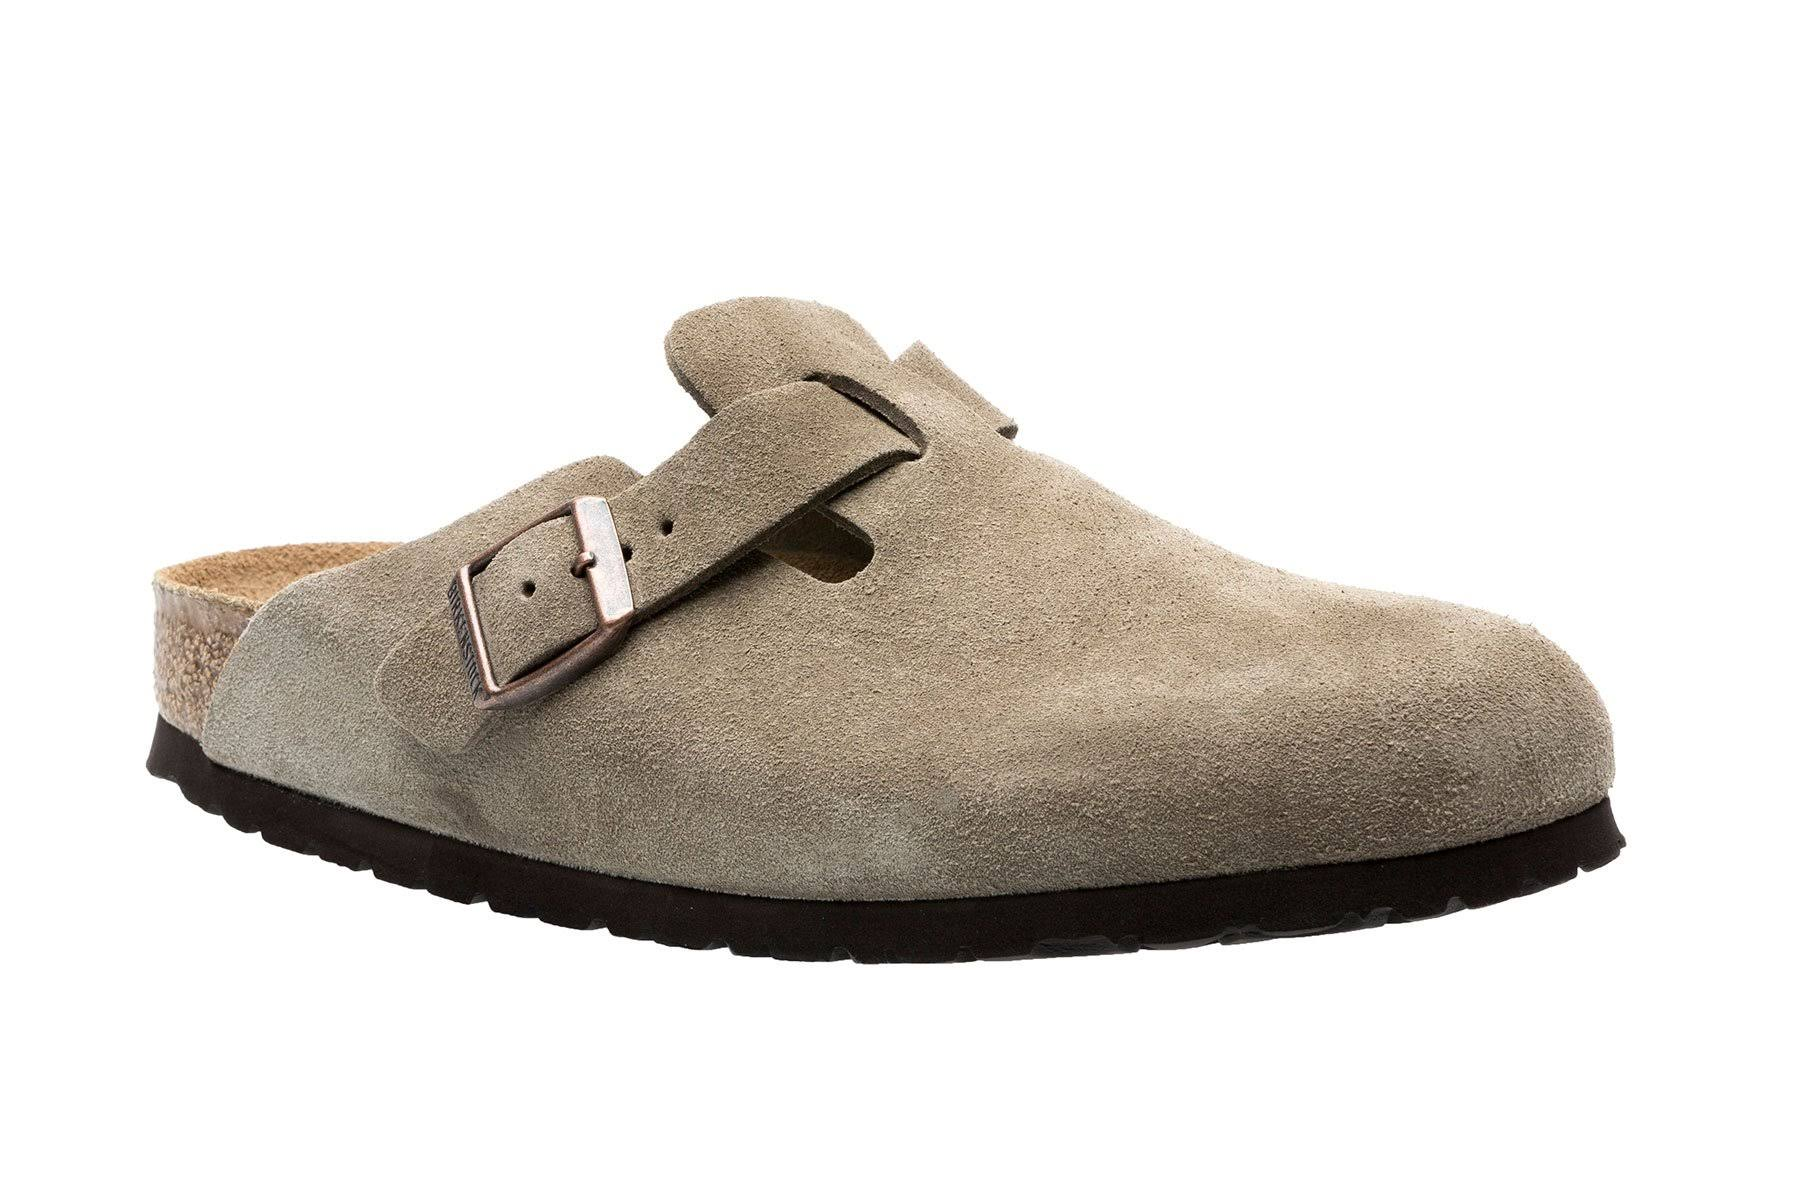 Birkenstock Unisex Boston Soft Footbed Leather Clog - Taupe